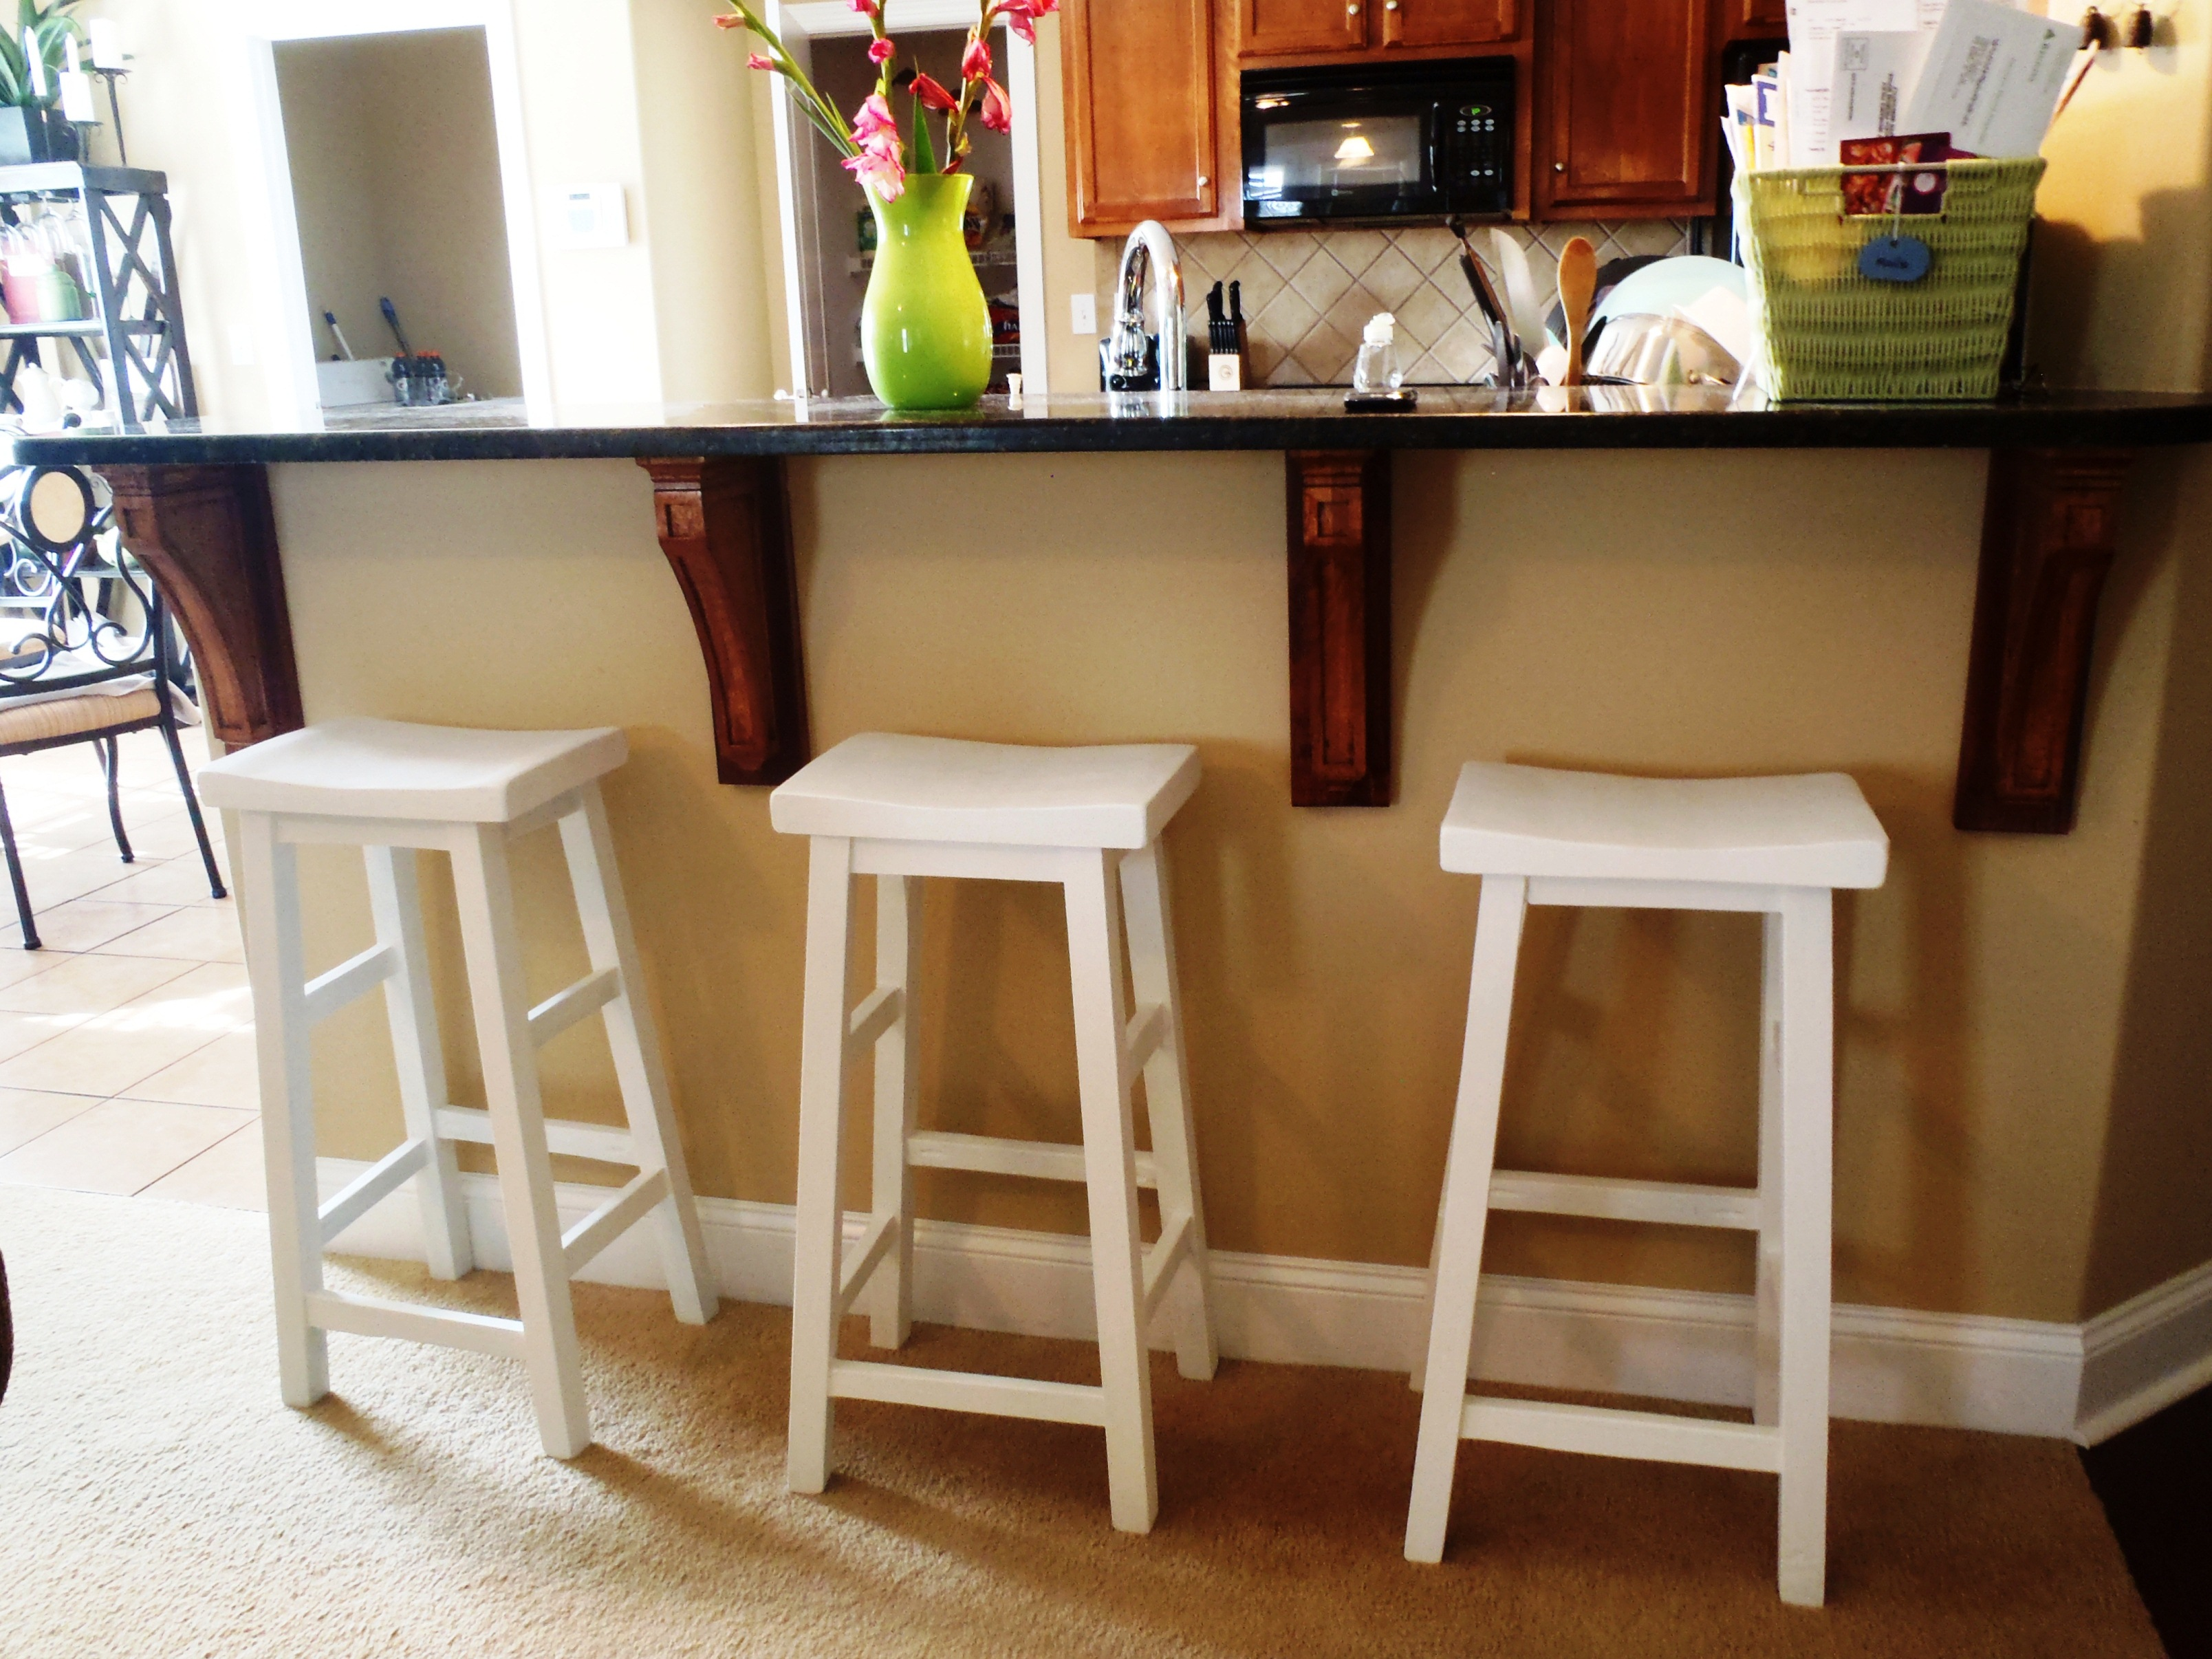 Ana white barstools diy projects barstools solutioingenieria